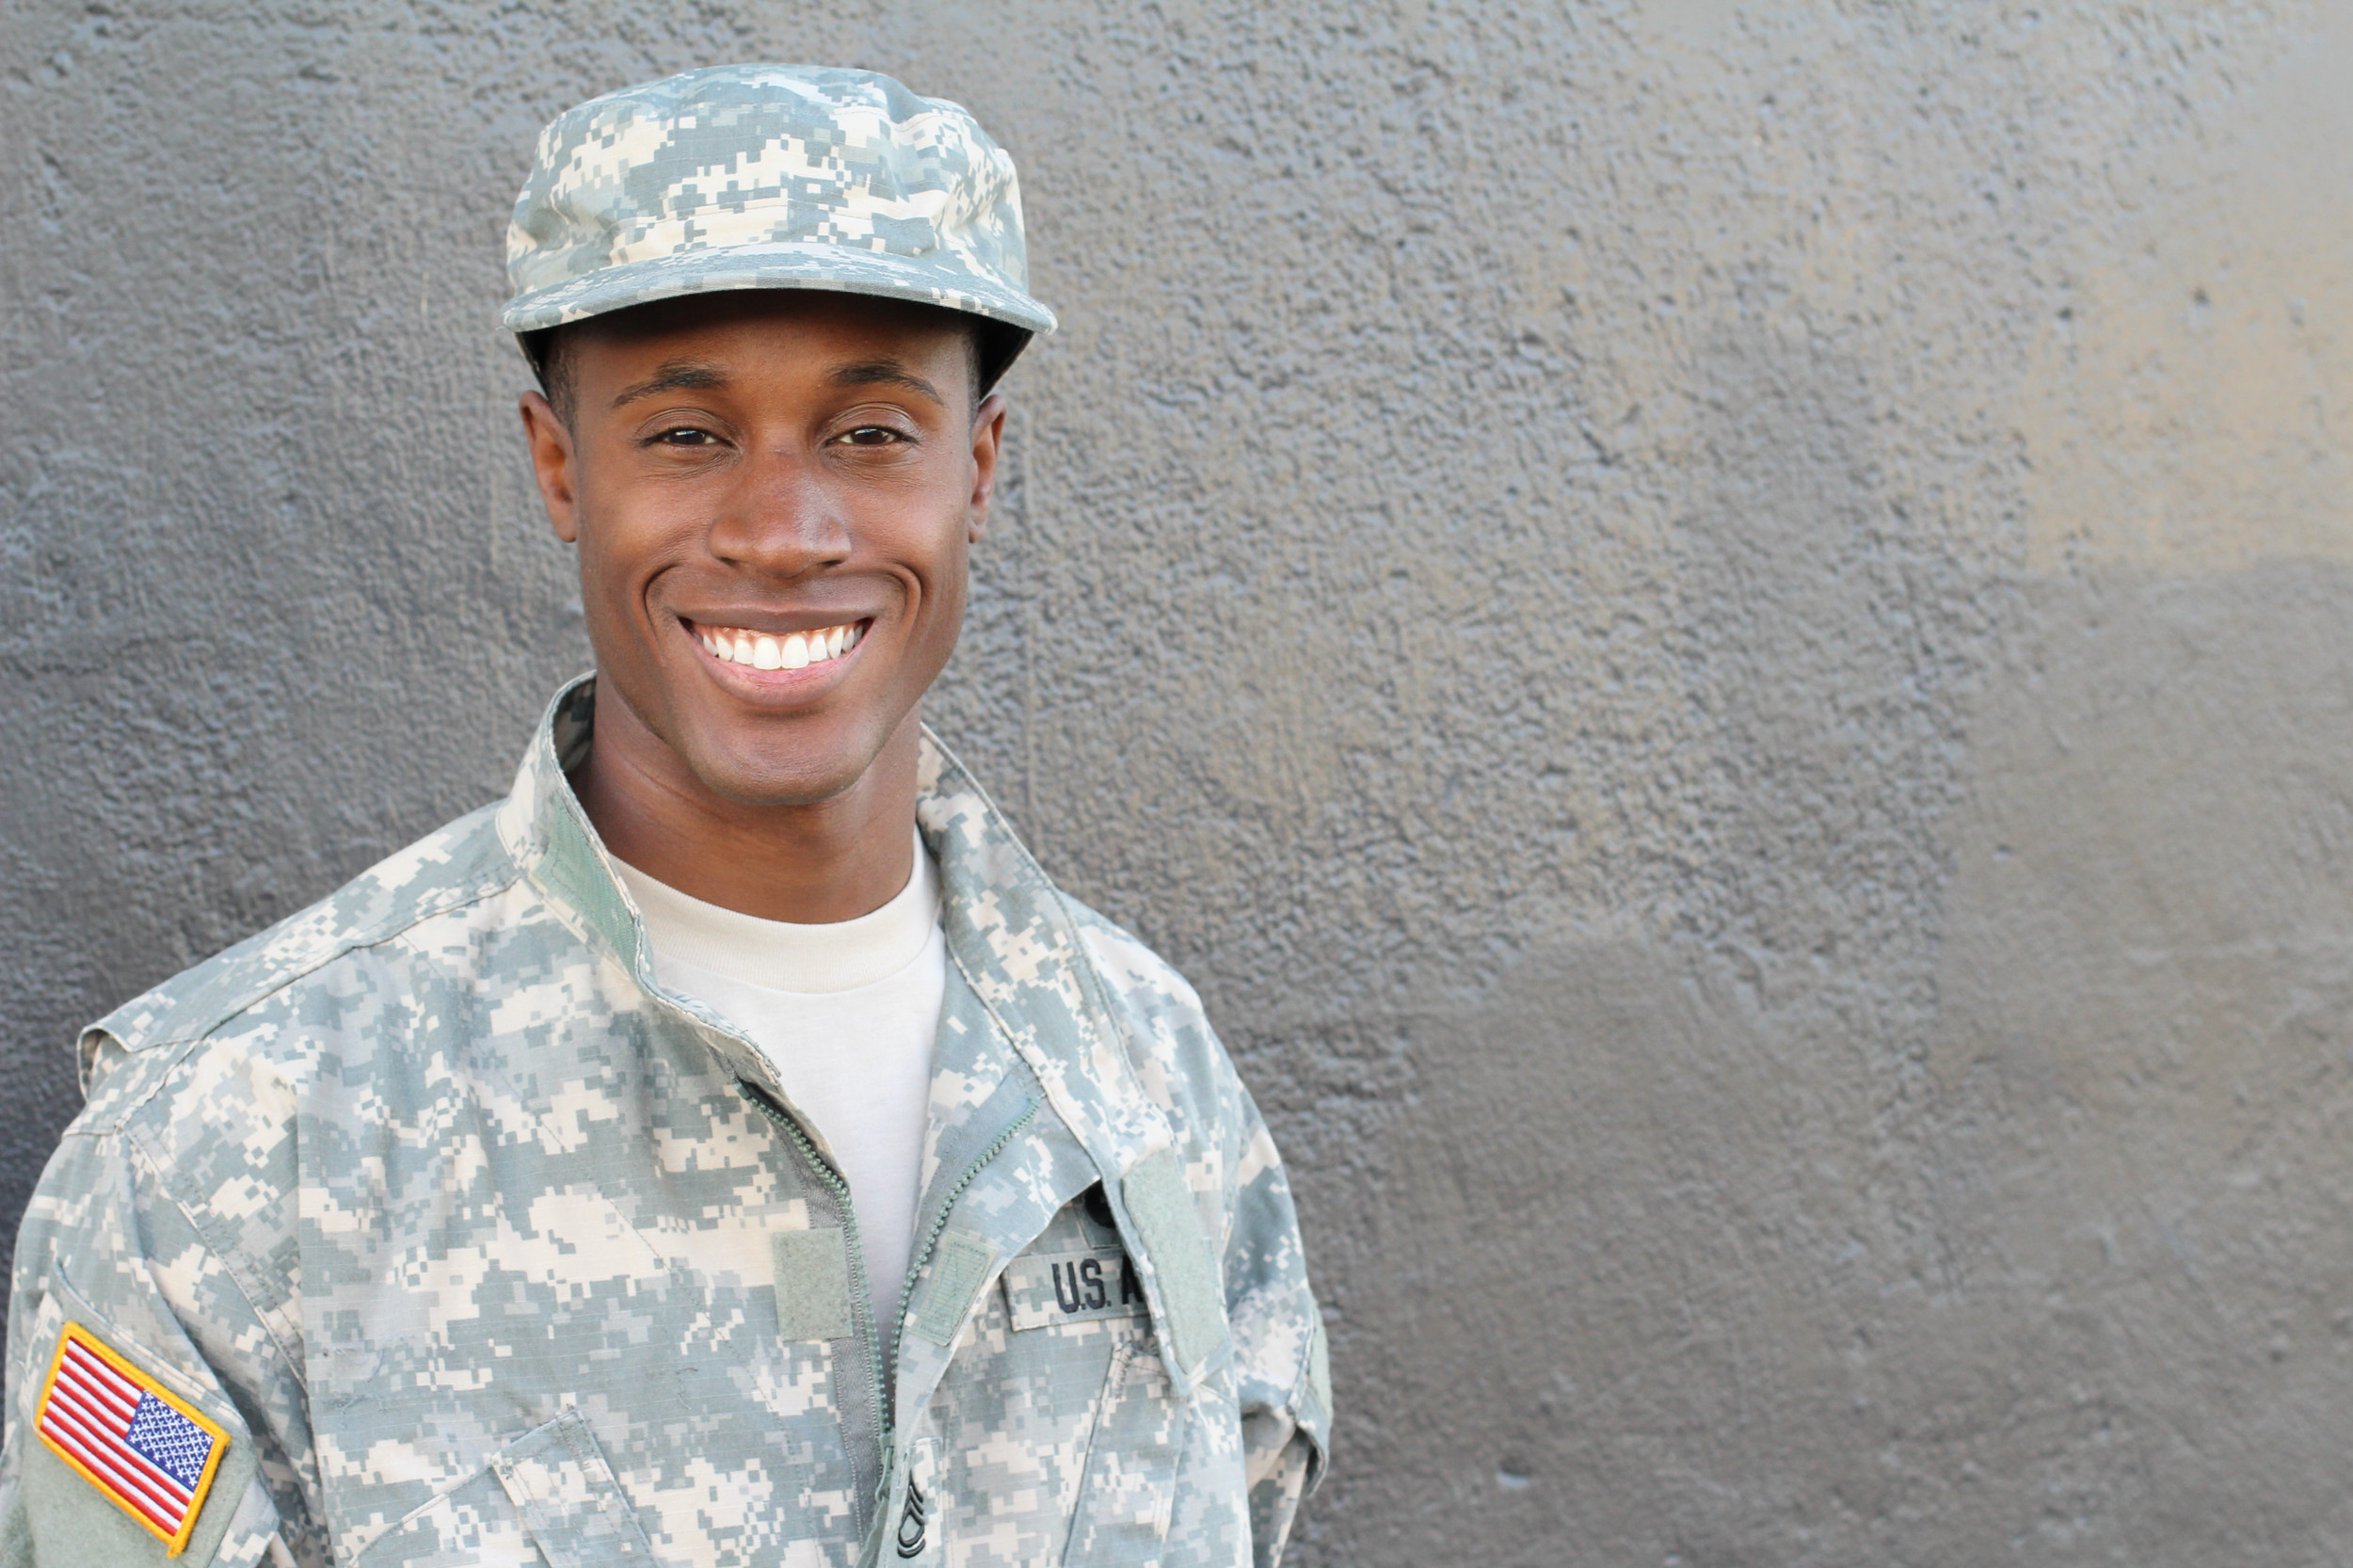 7 smart personal finance moves for military personnel before deployment